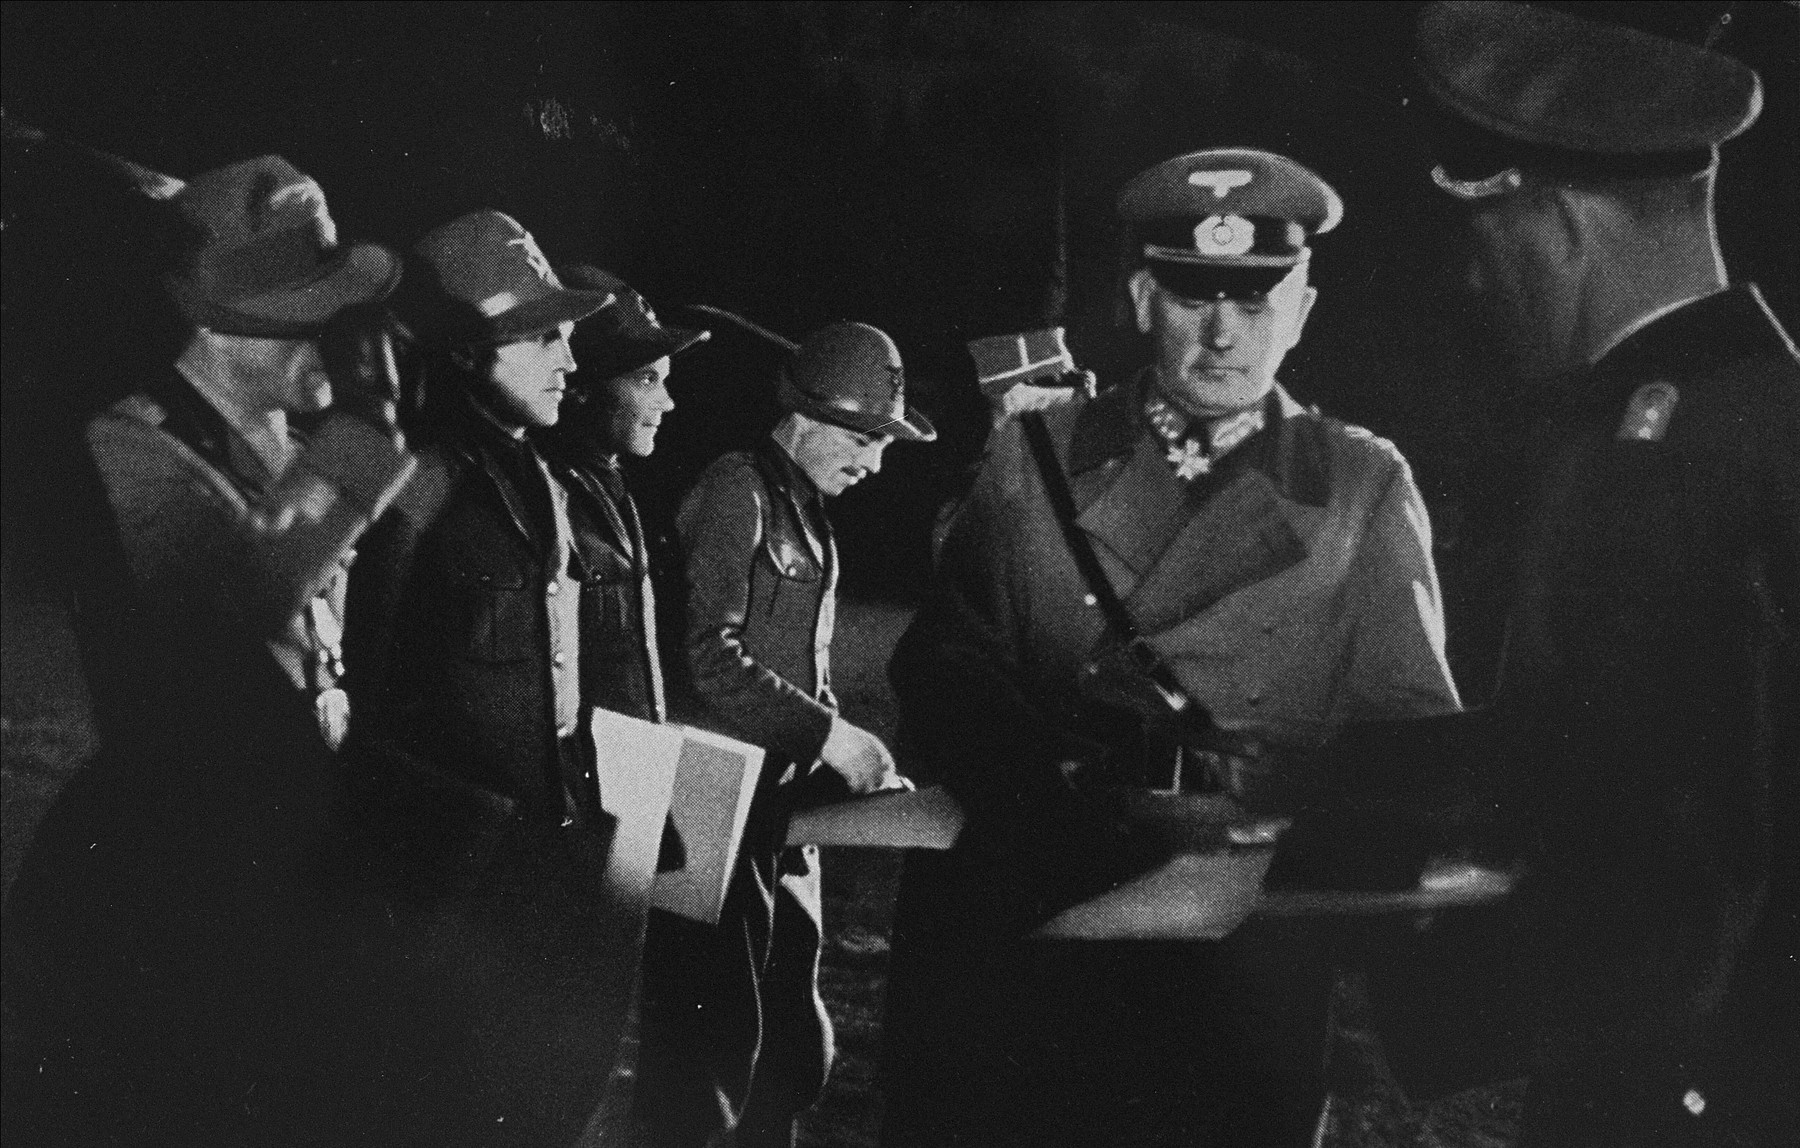 General Werner von Blomberg distributes winners' certificates to an Italian military patrol.    These certificates were awarded to competitors who participated in exhibition sports during the 1936 Winter Olympics.